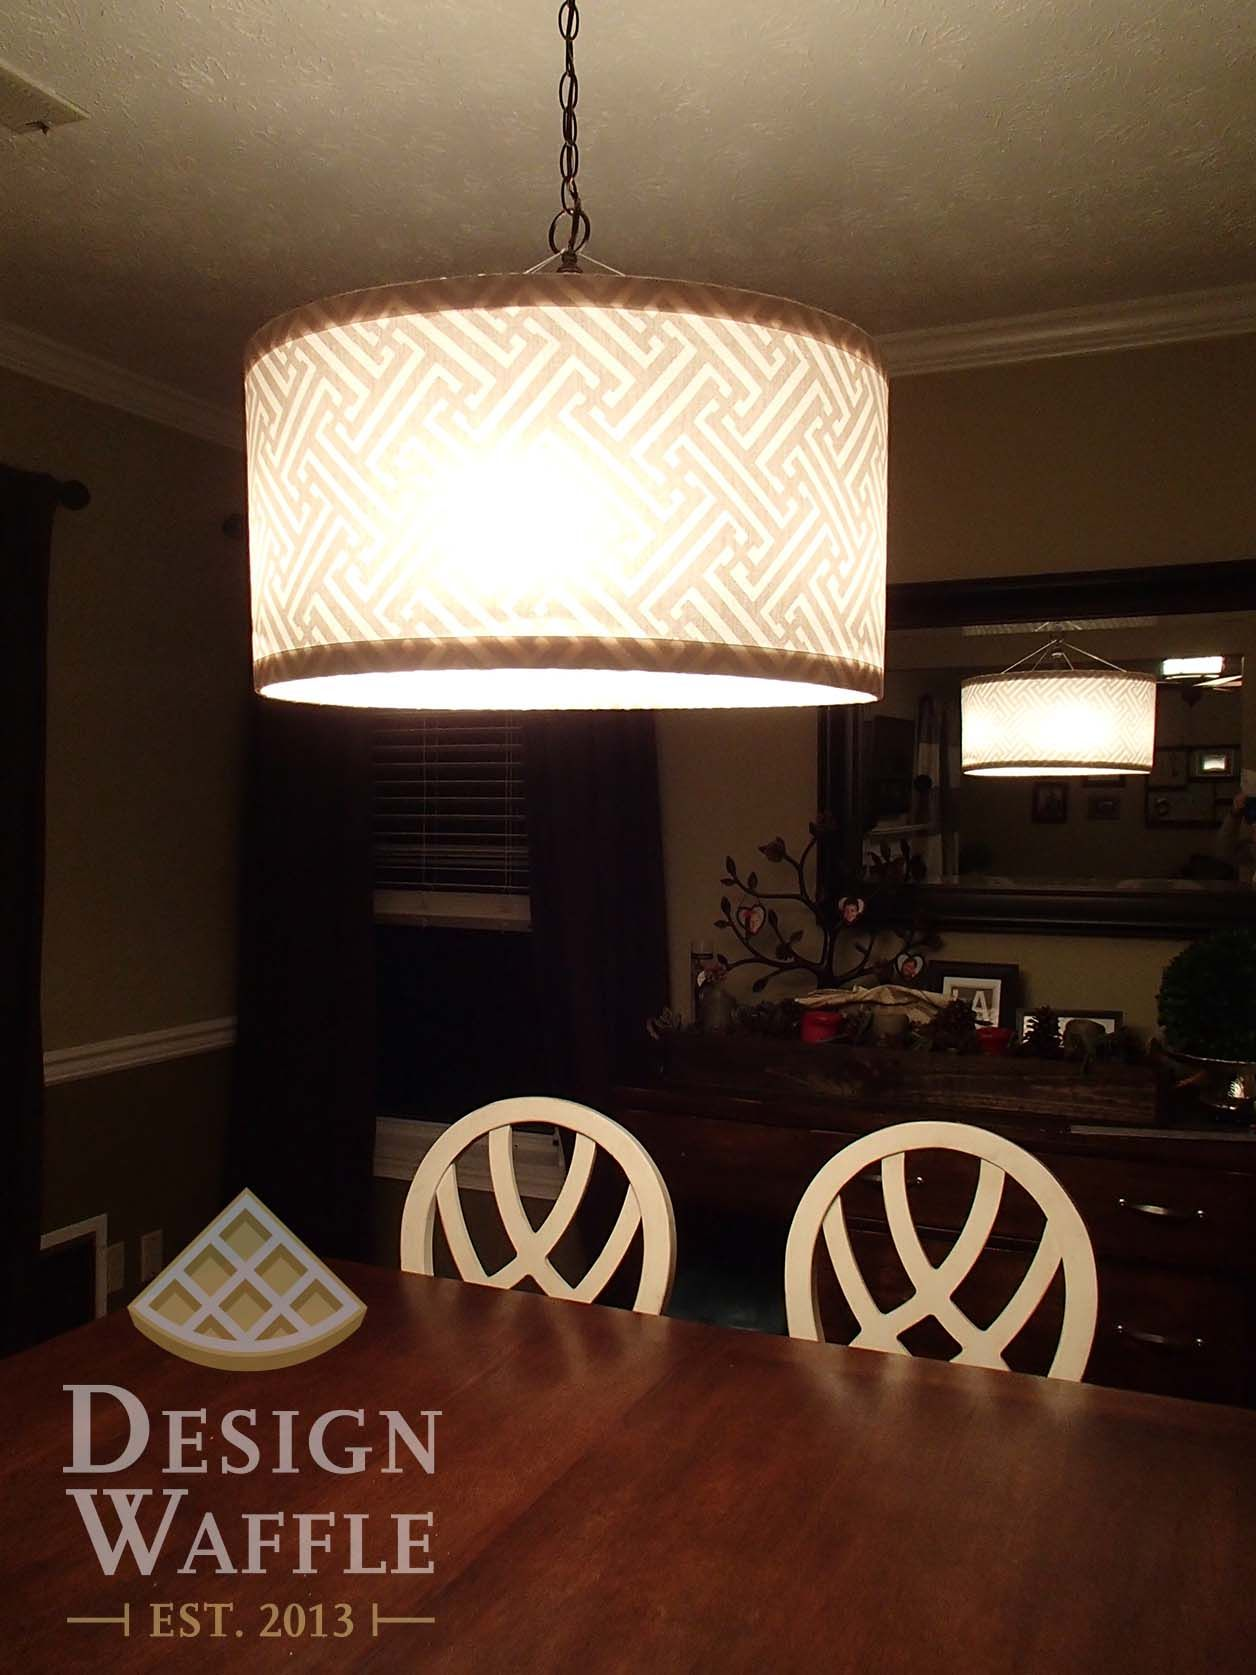 Ordinaire DIY Chandelier Drum Shade. Super Easy Directions!